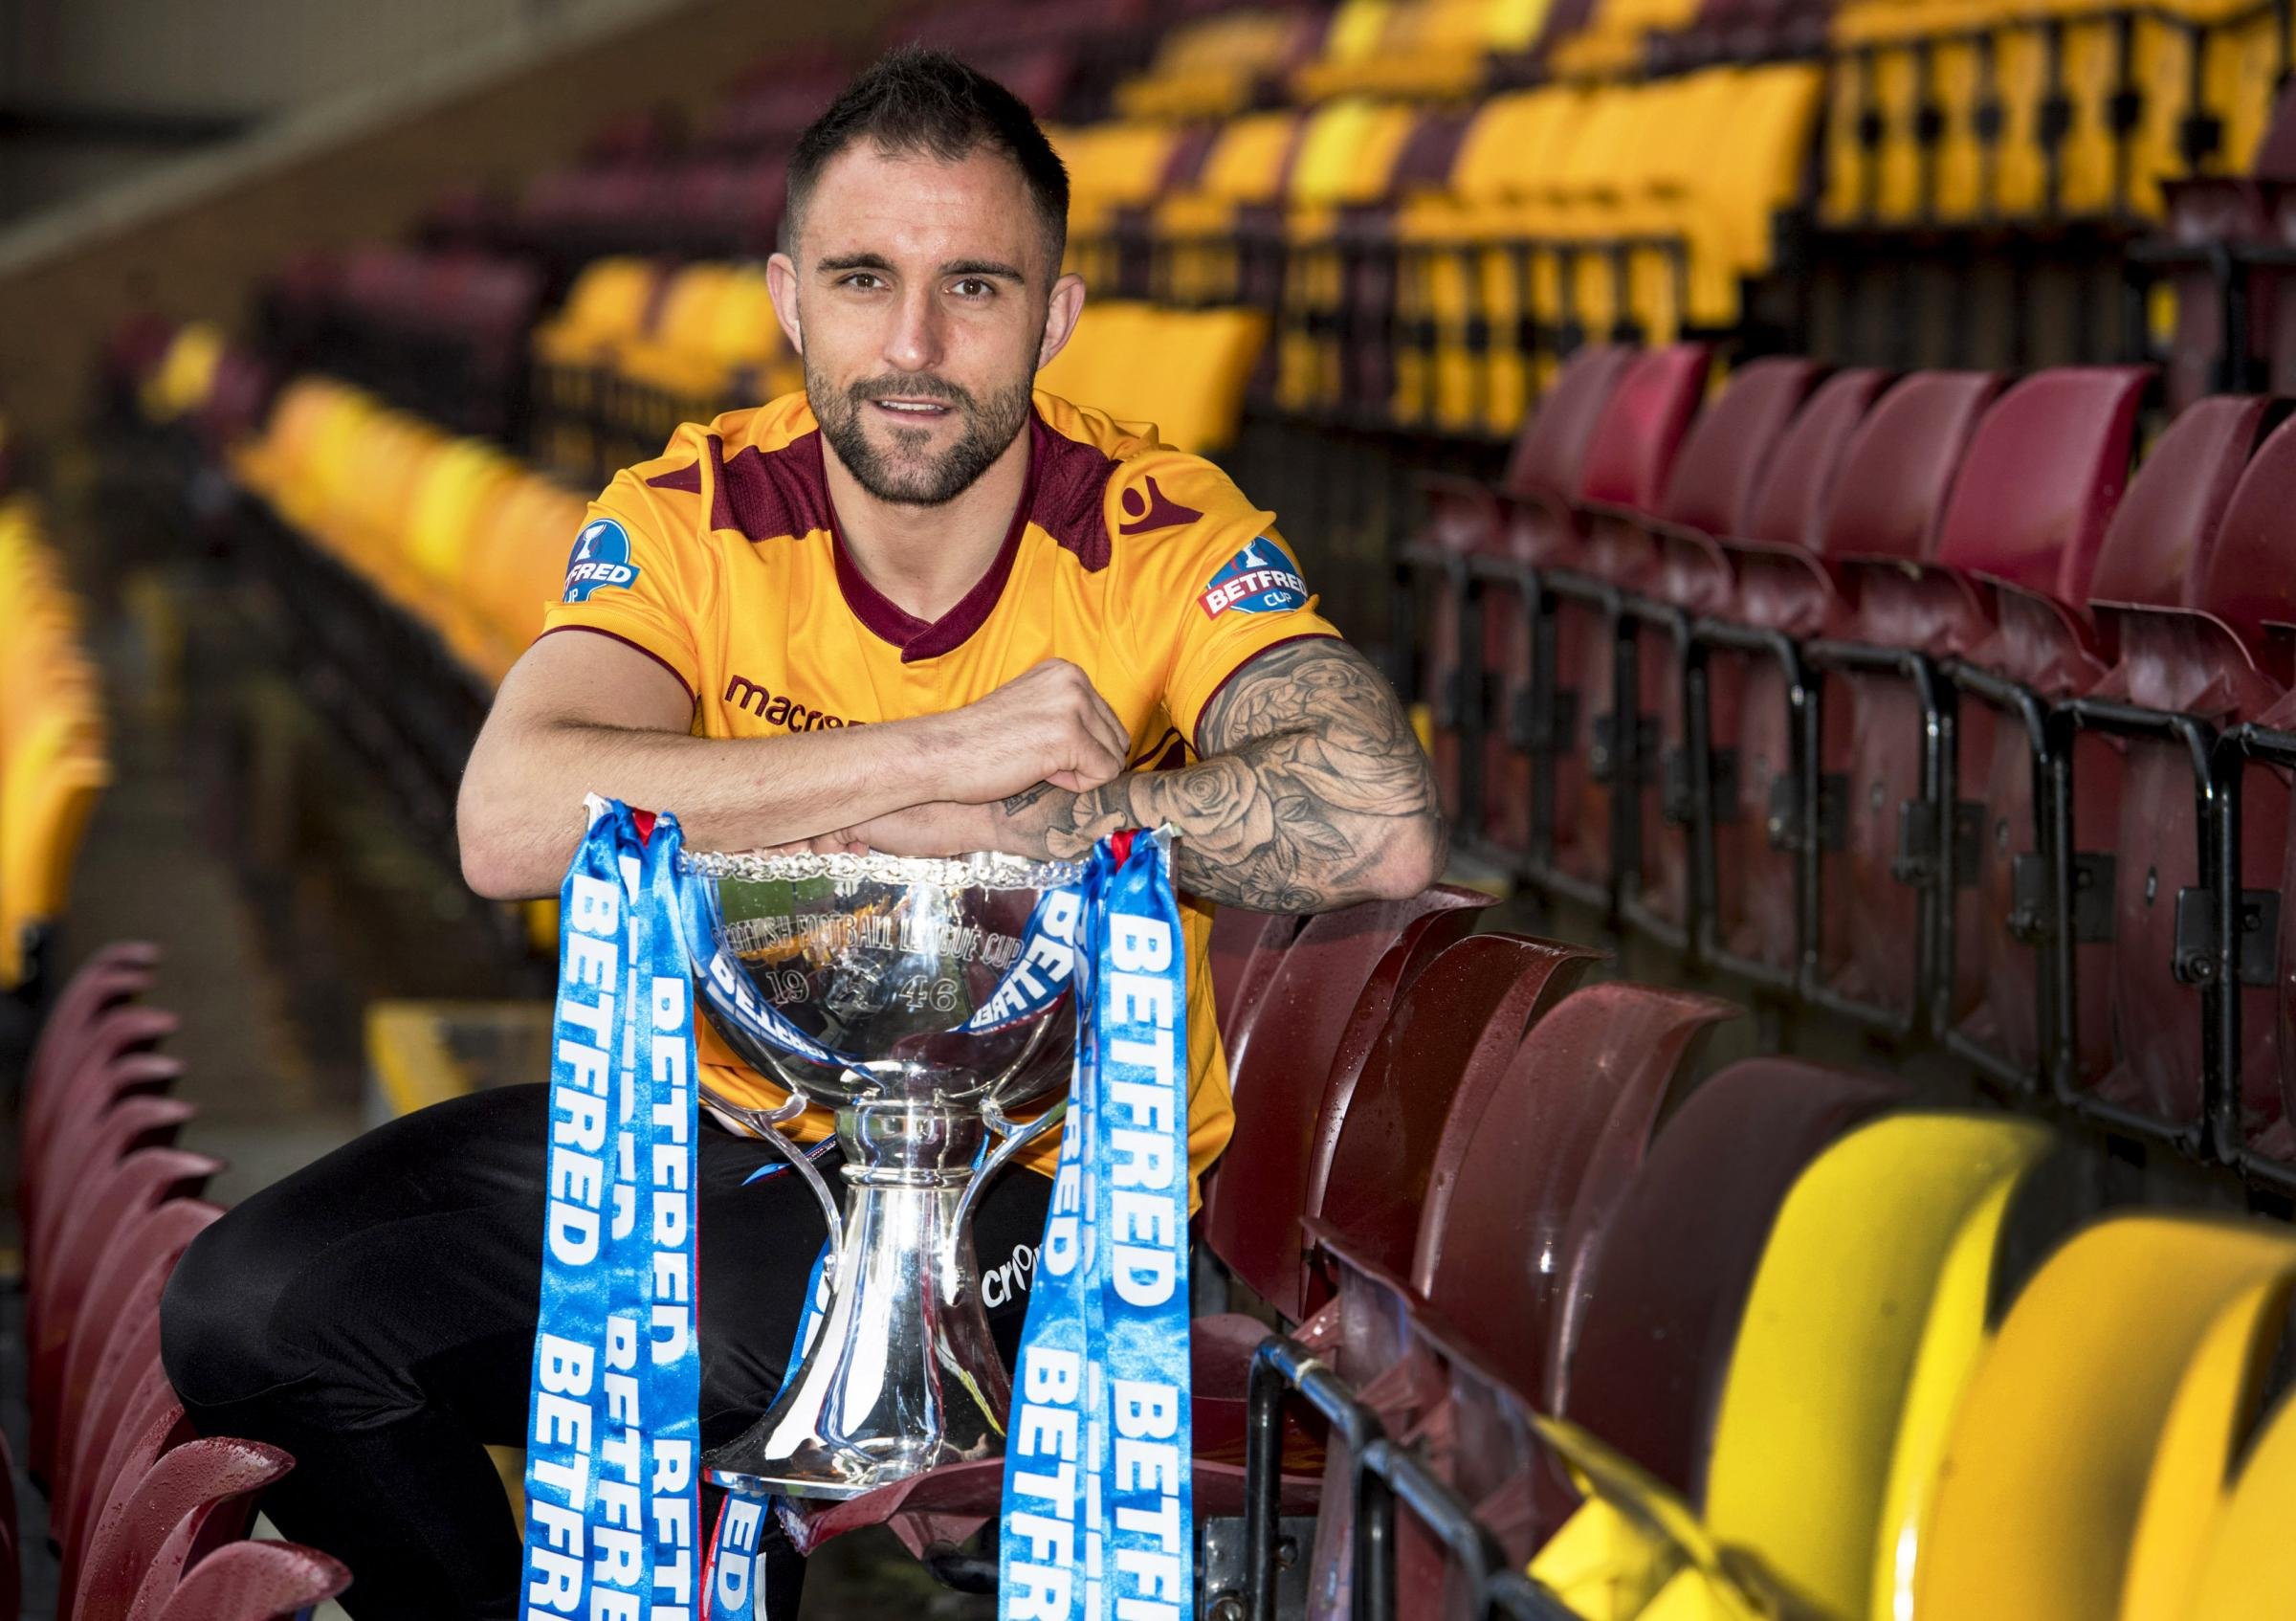 Motherwell defender Peter Hartley with the Betfred Cup trophy at Fir Park yesterday.